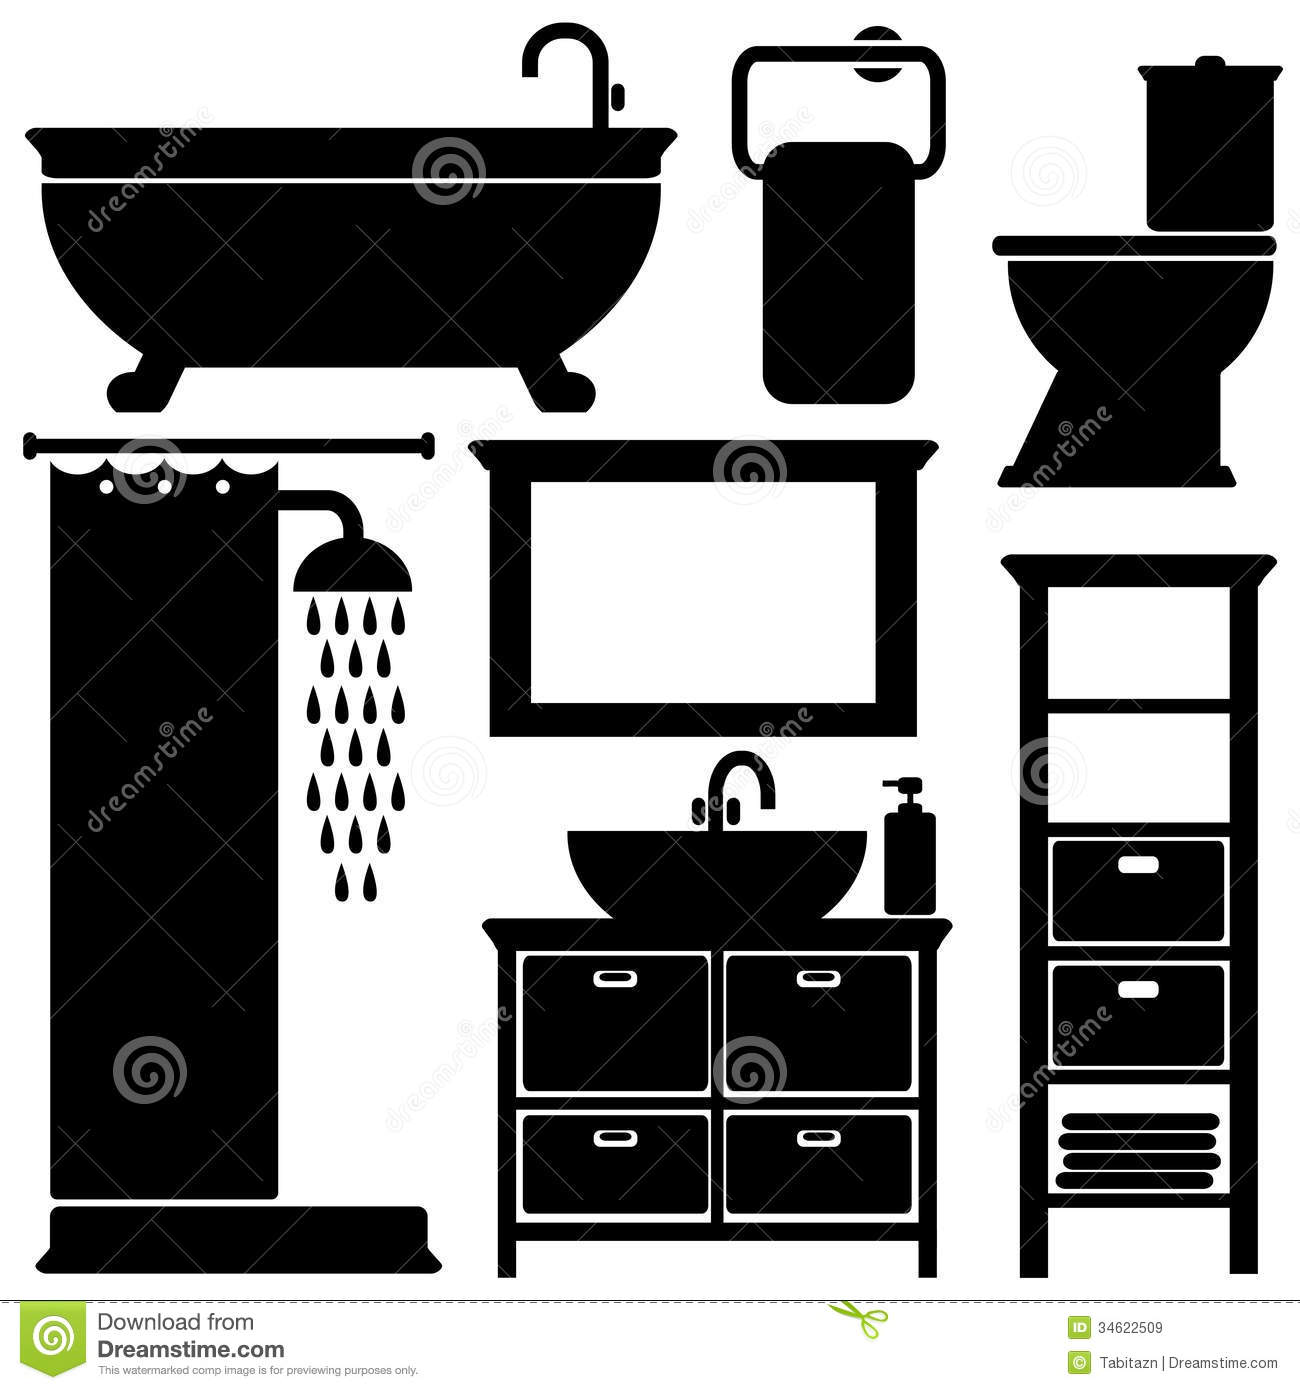 Bathroom Toilet Black Icons Set Silhouettes On Wh Stock Vector Image 34622509